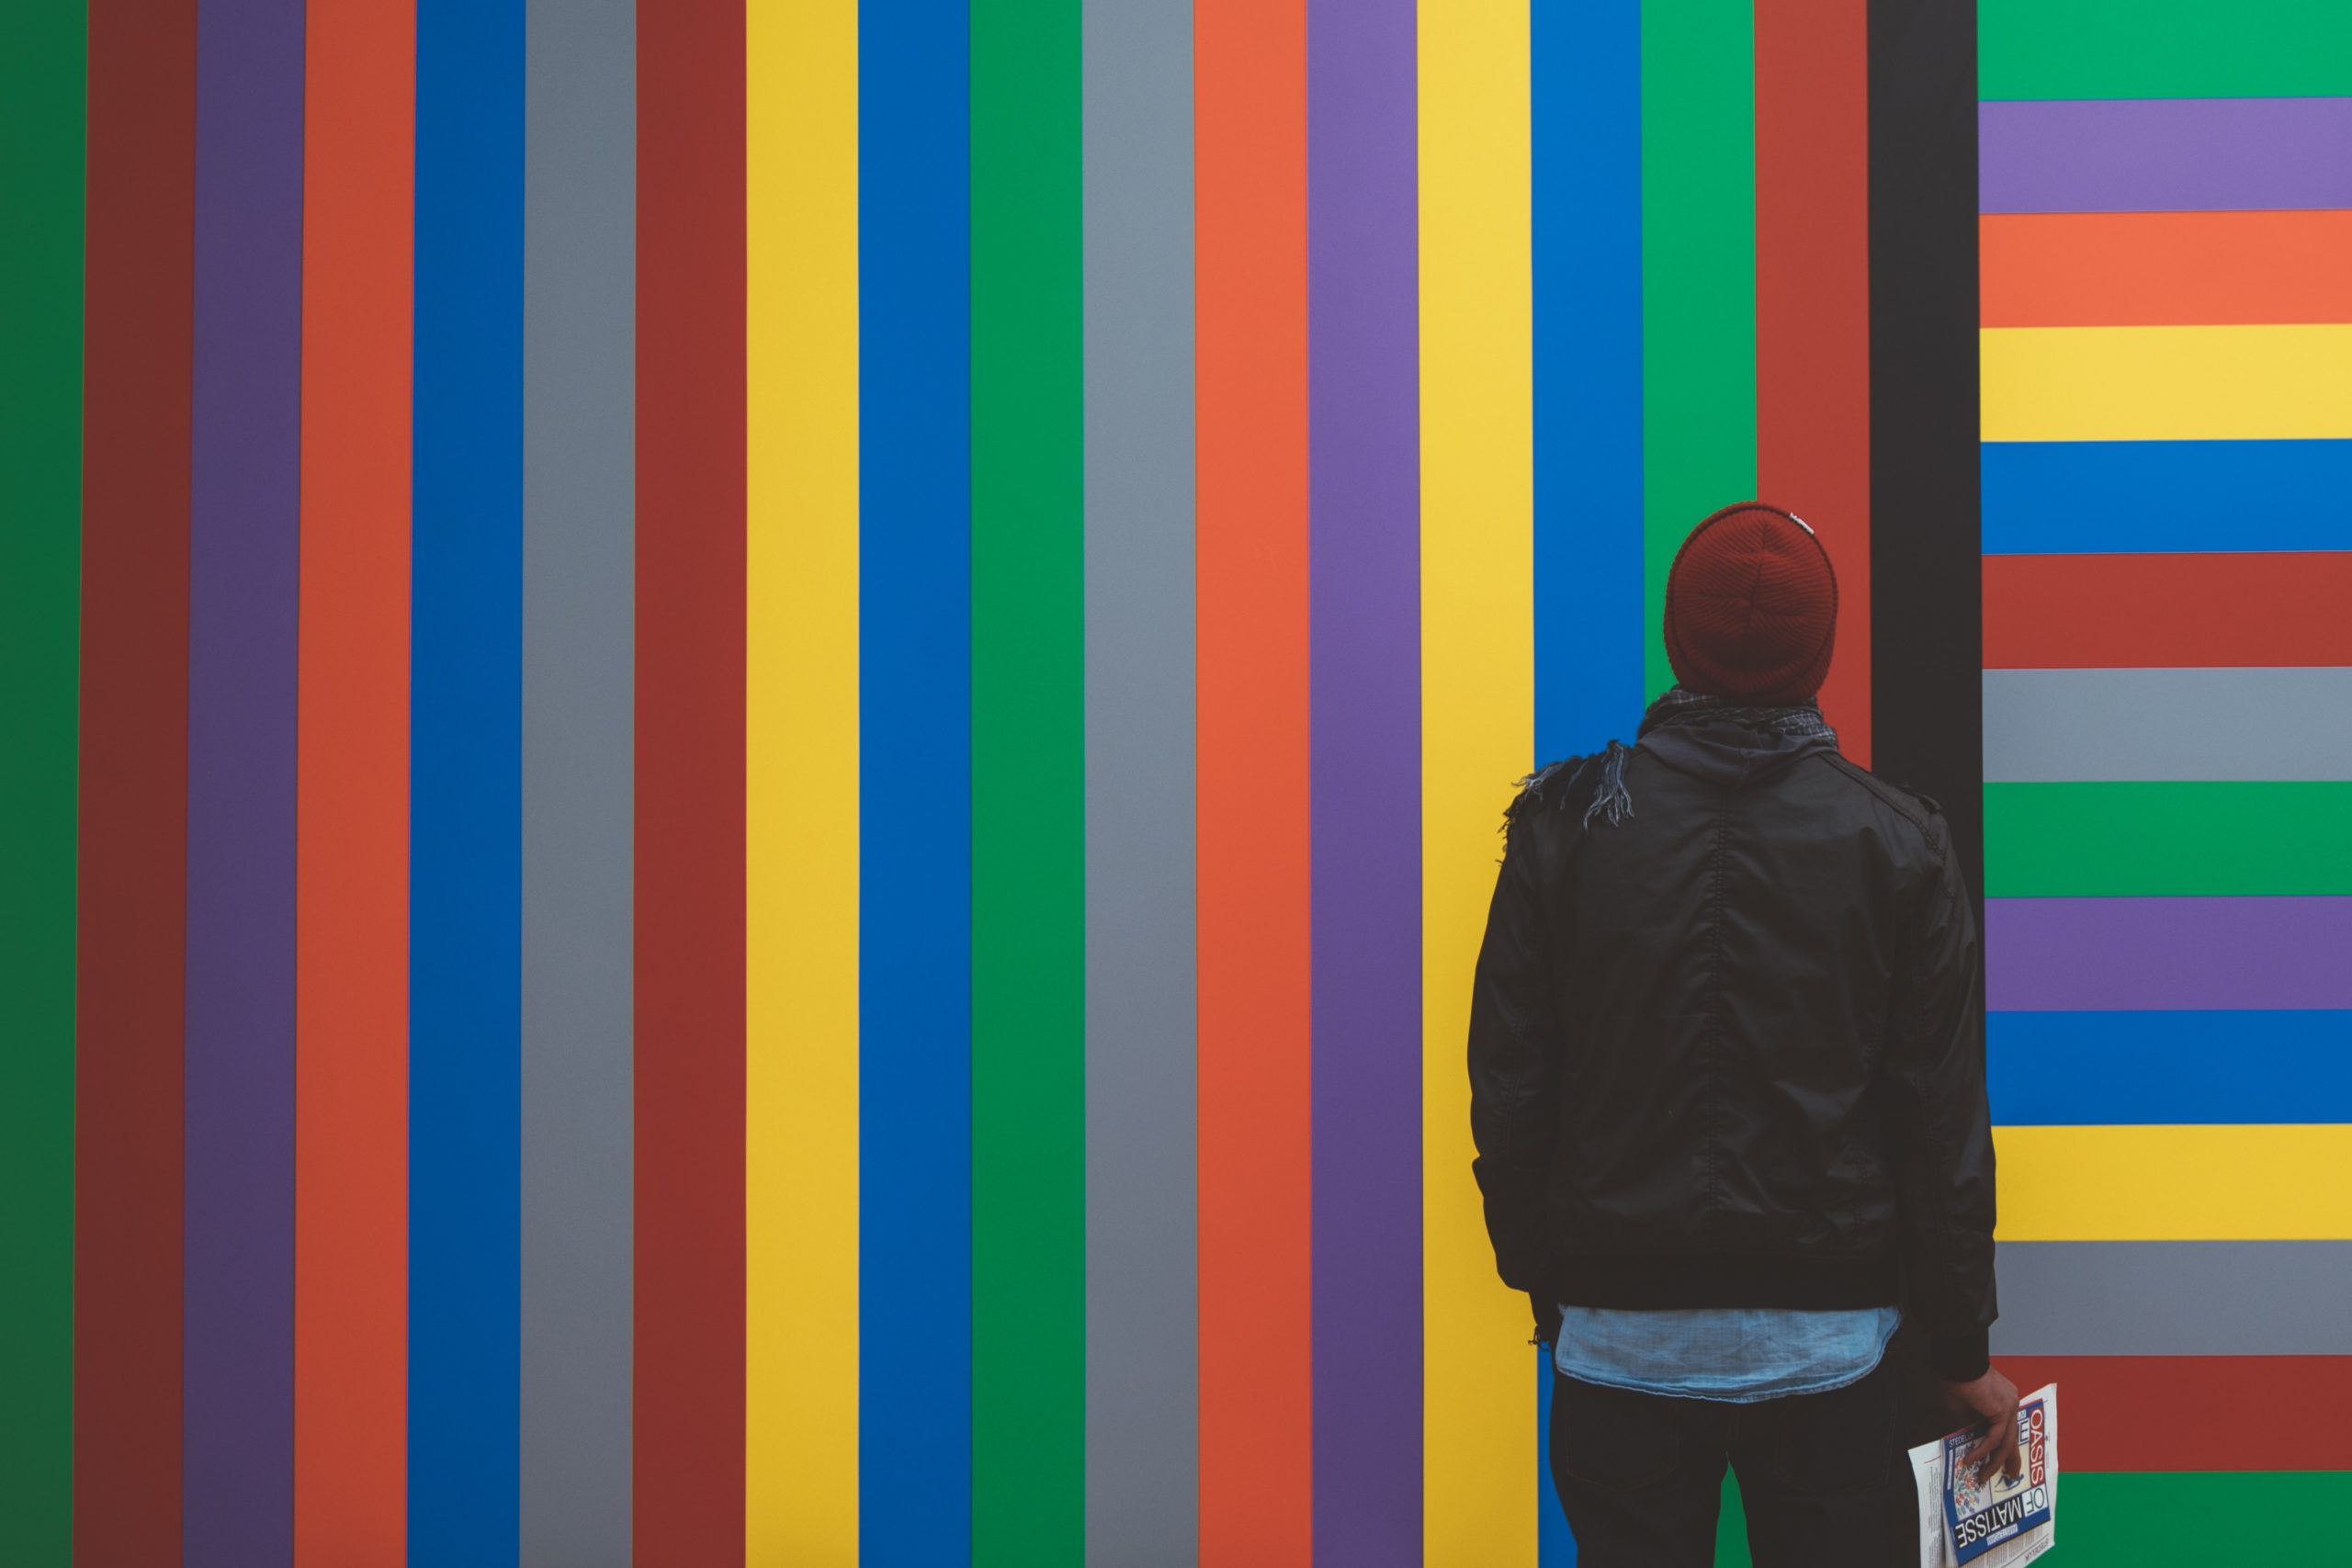 The psychology of color and what it means for fundraising